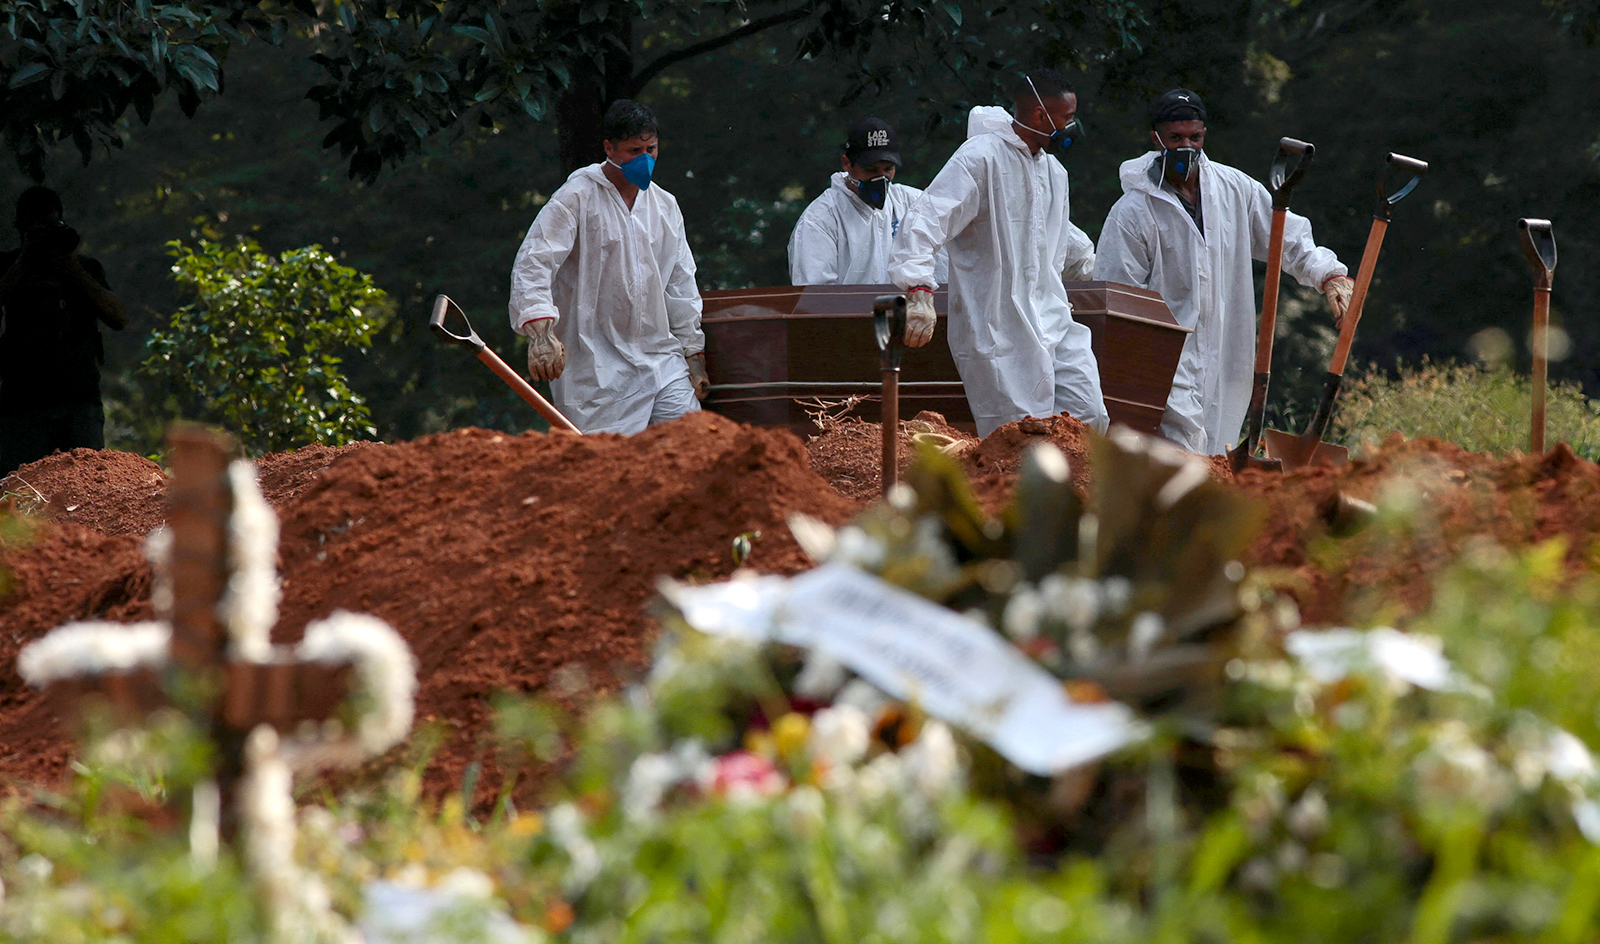 Cemetery workers carry the coffin of a victim of Covid-19 at the Vila Formosa cemetery in Sao Paulo, Brazil, on March 23.